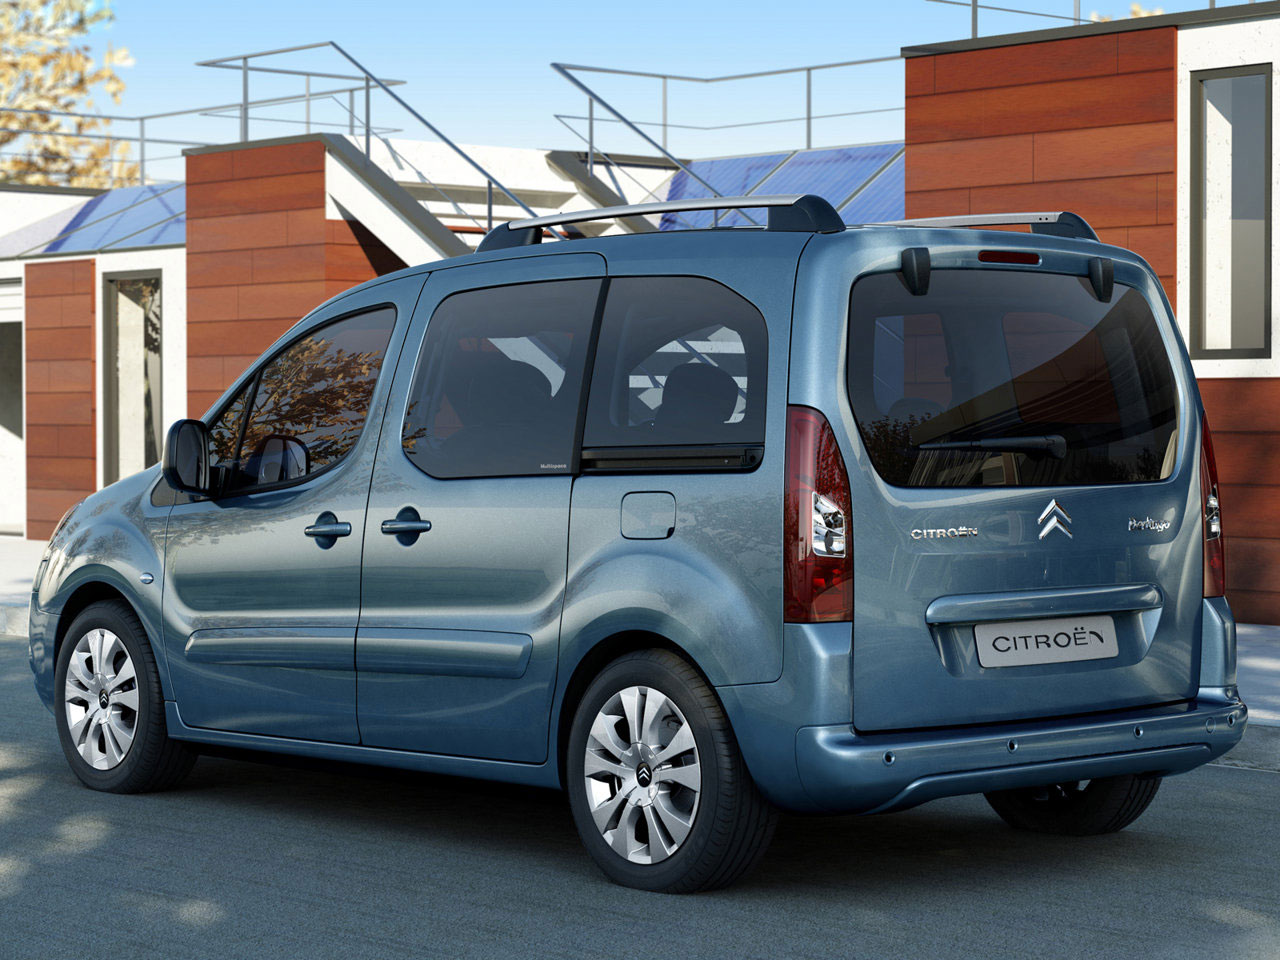 2009 Citroen Berlingo #19